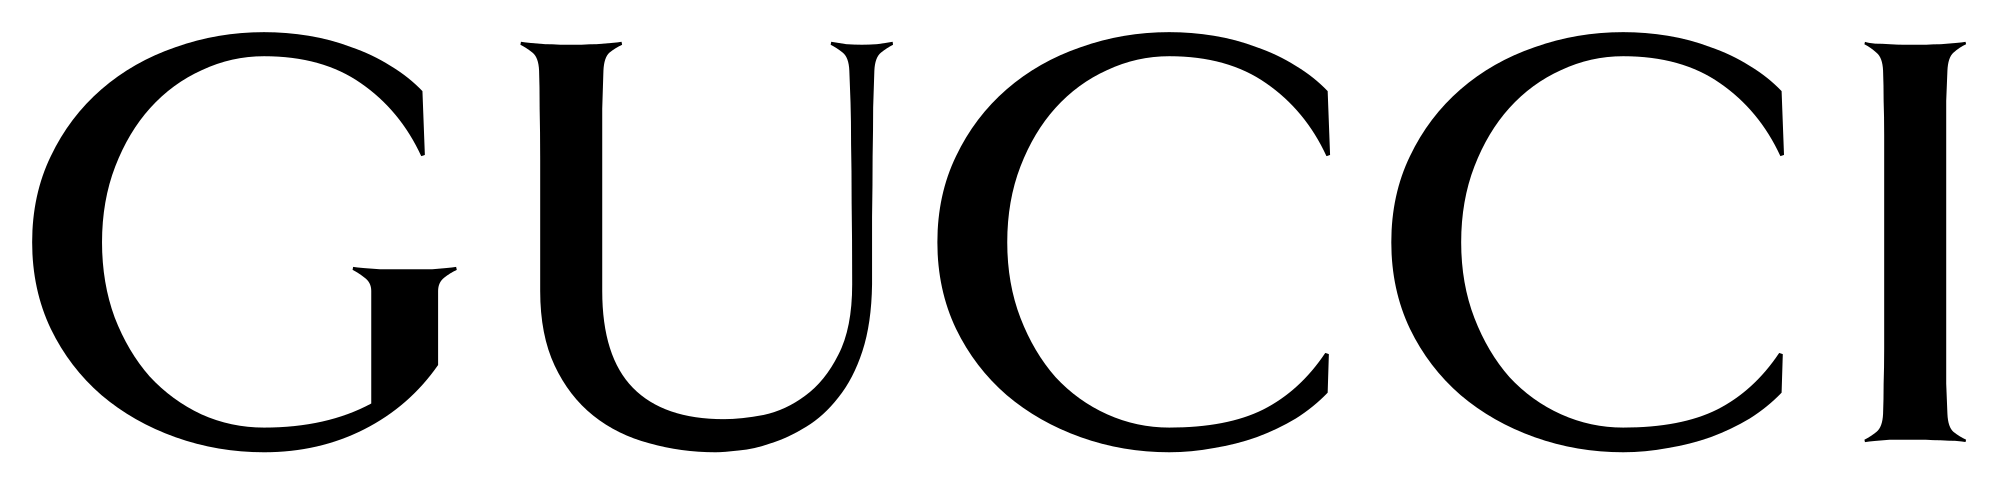 Gucci logo png. File svg wikimedia commons